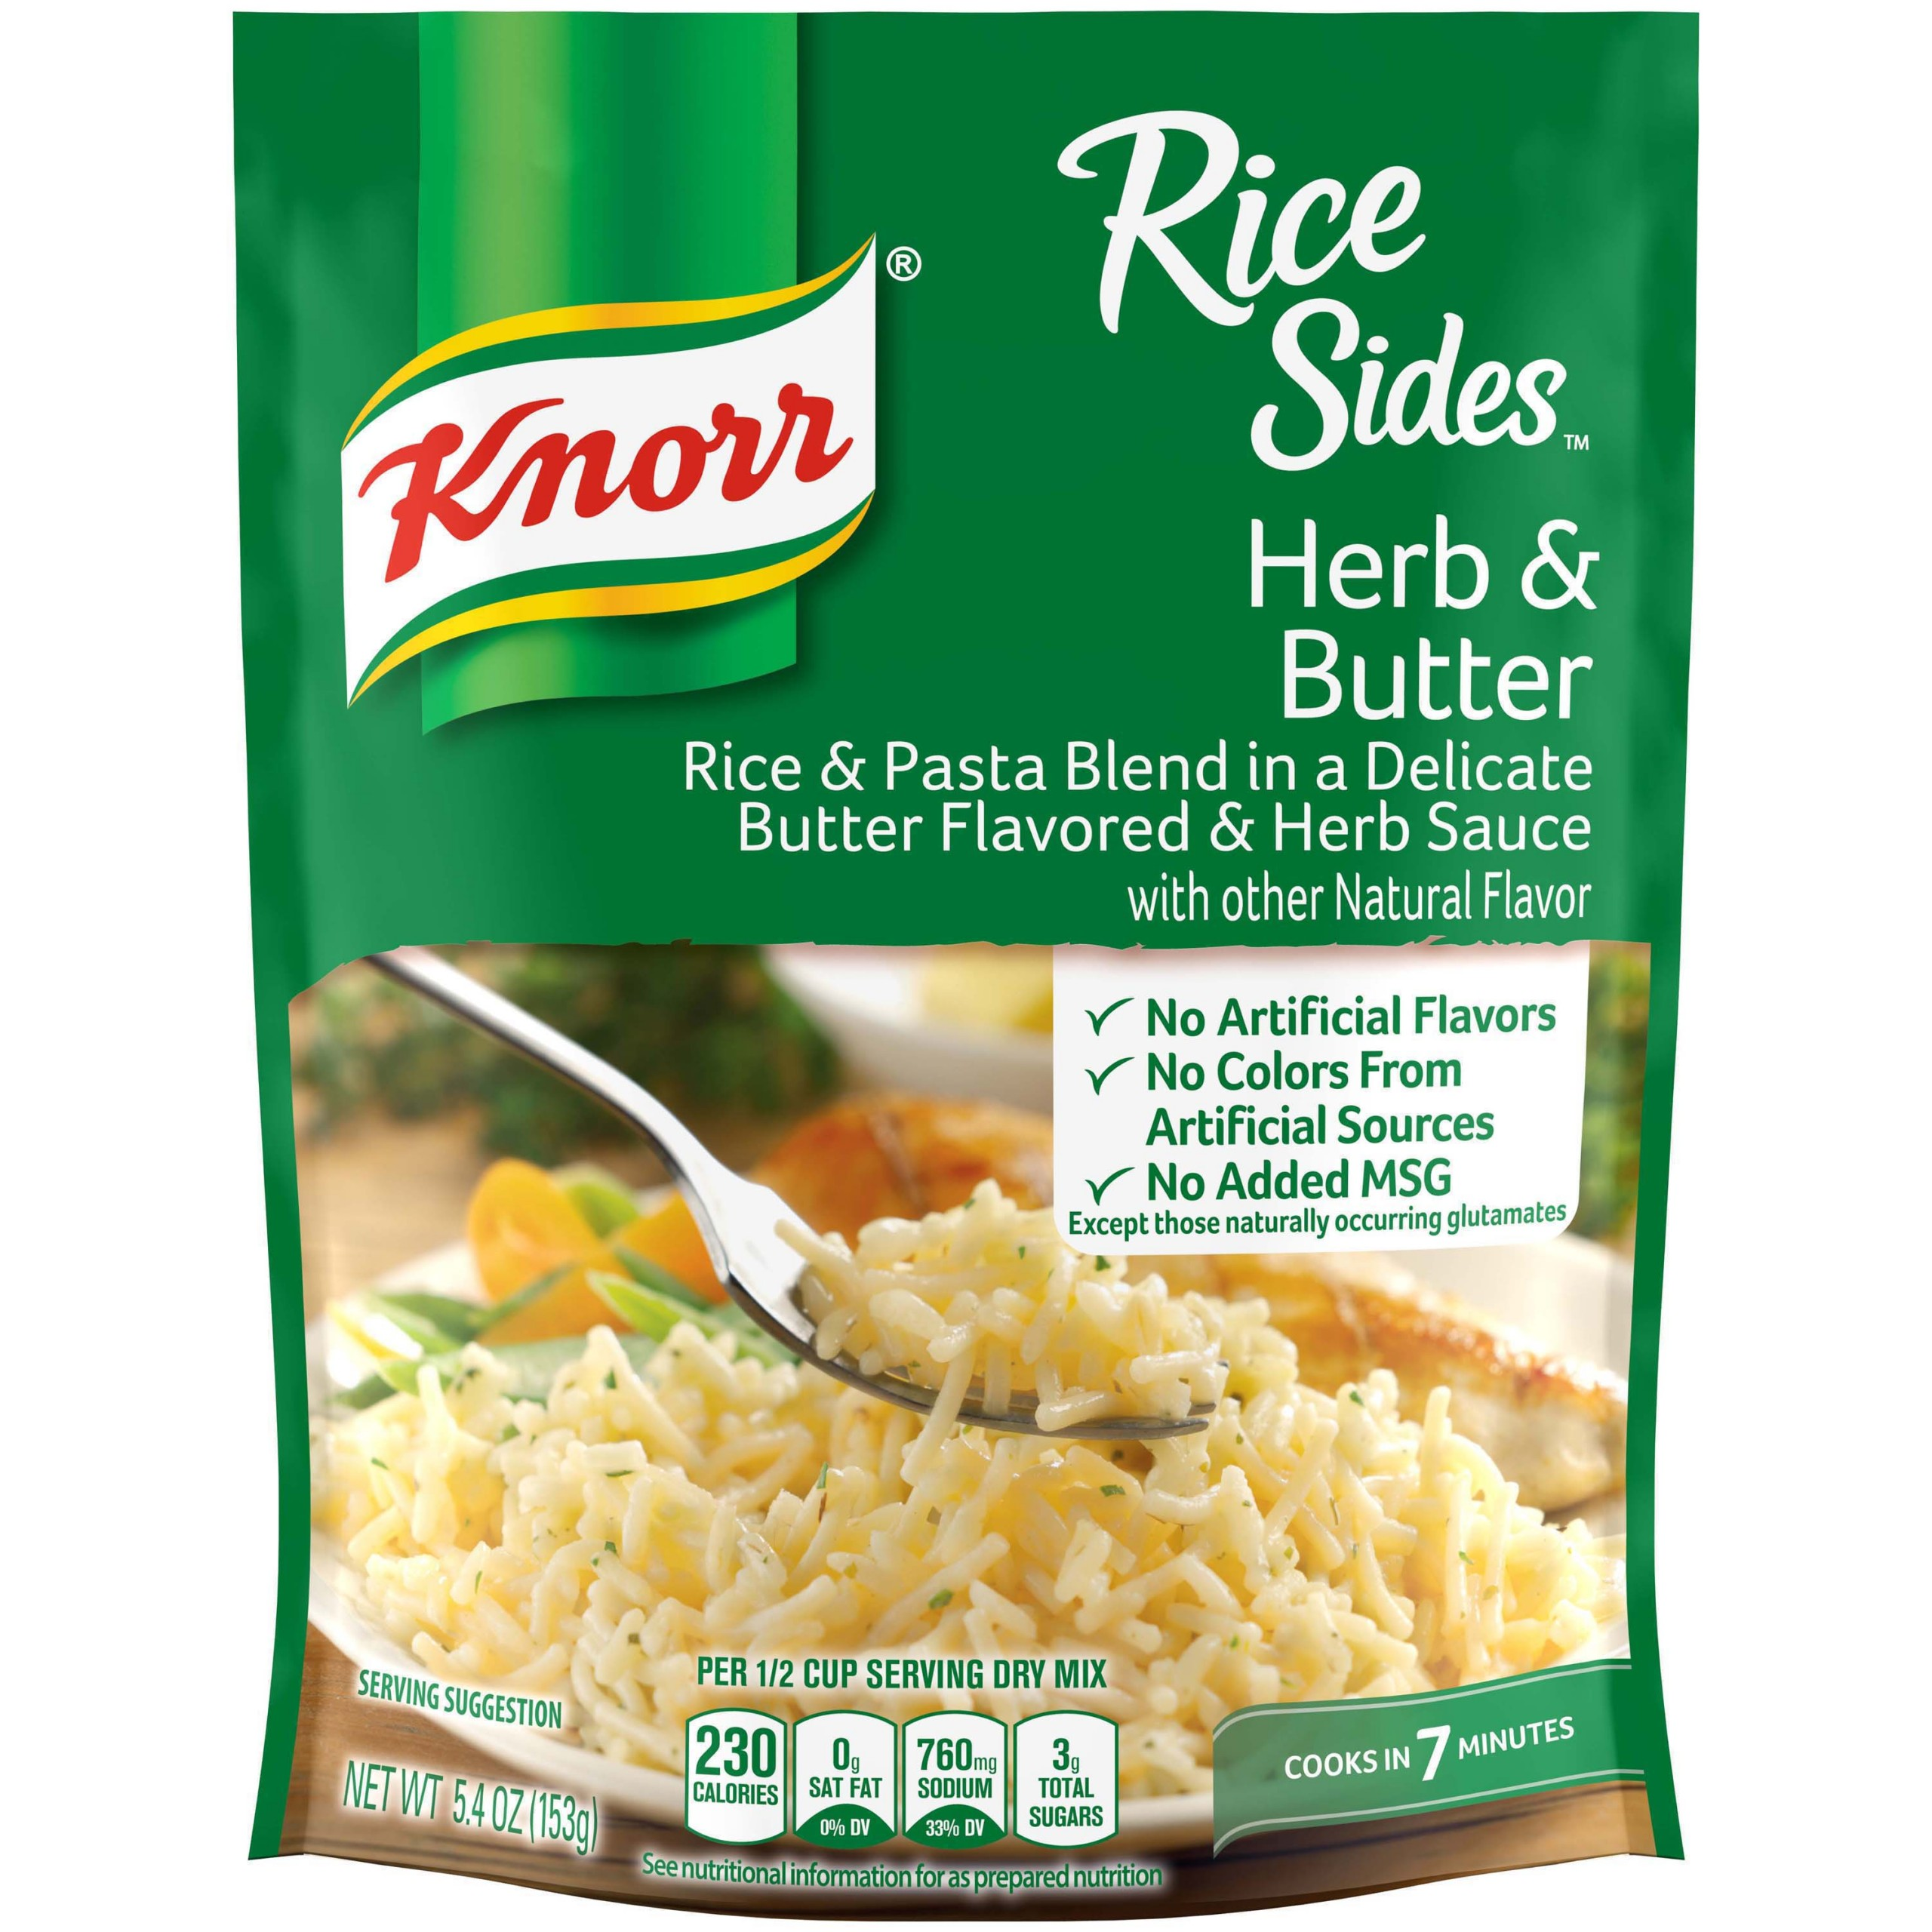 Knorr Rice Sides Herb & Butter